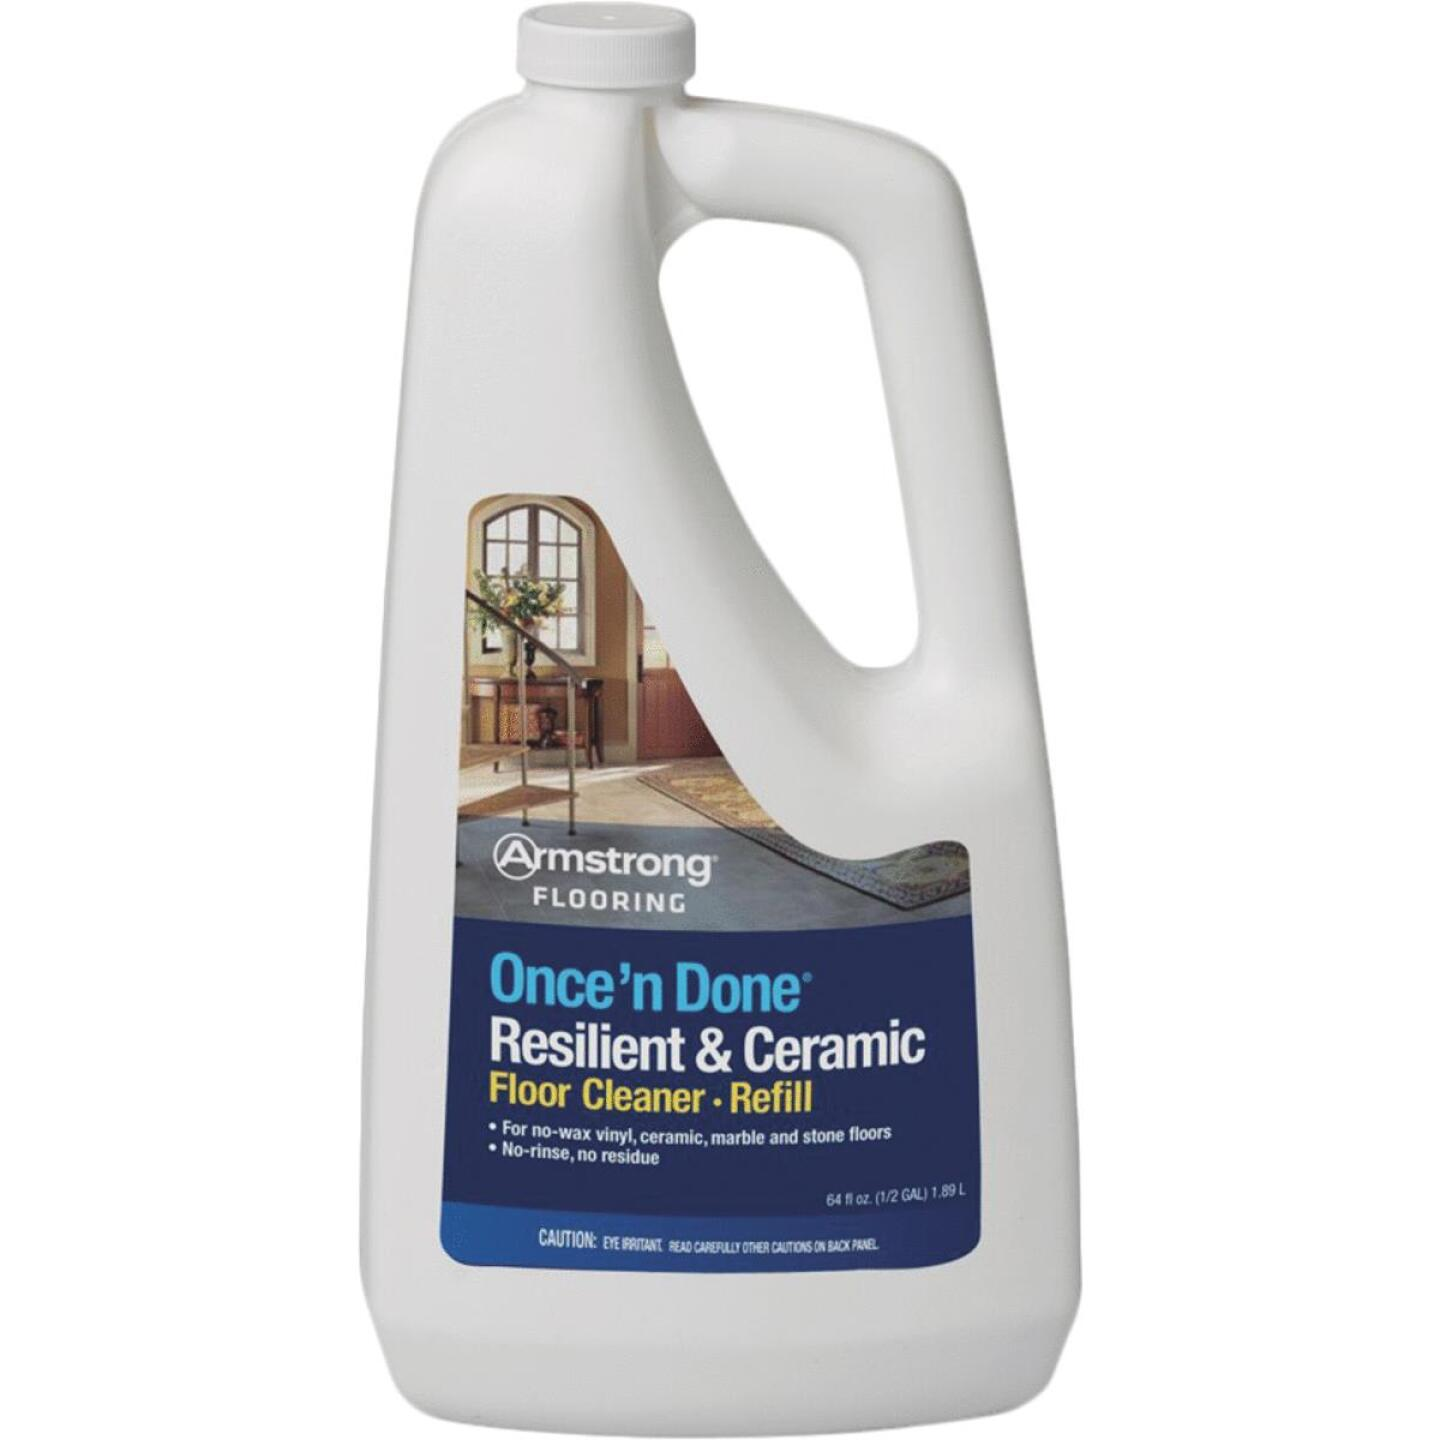 Armstrong Flooring Once 'N Done 1/2 Gal. Ready-To -Use Resilient & Ceramic Floor Cleaner Refill Image 1